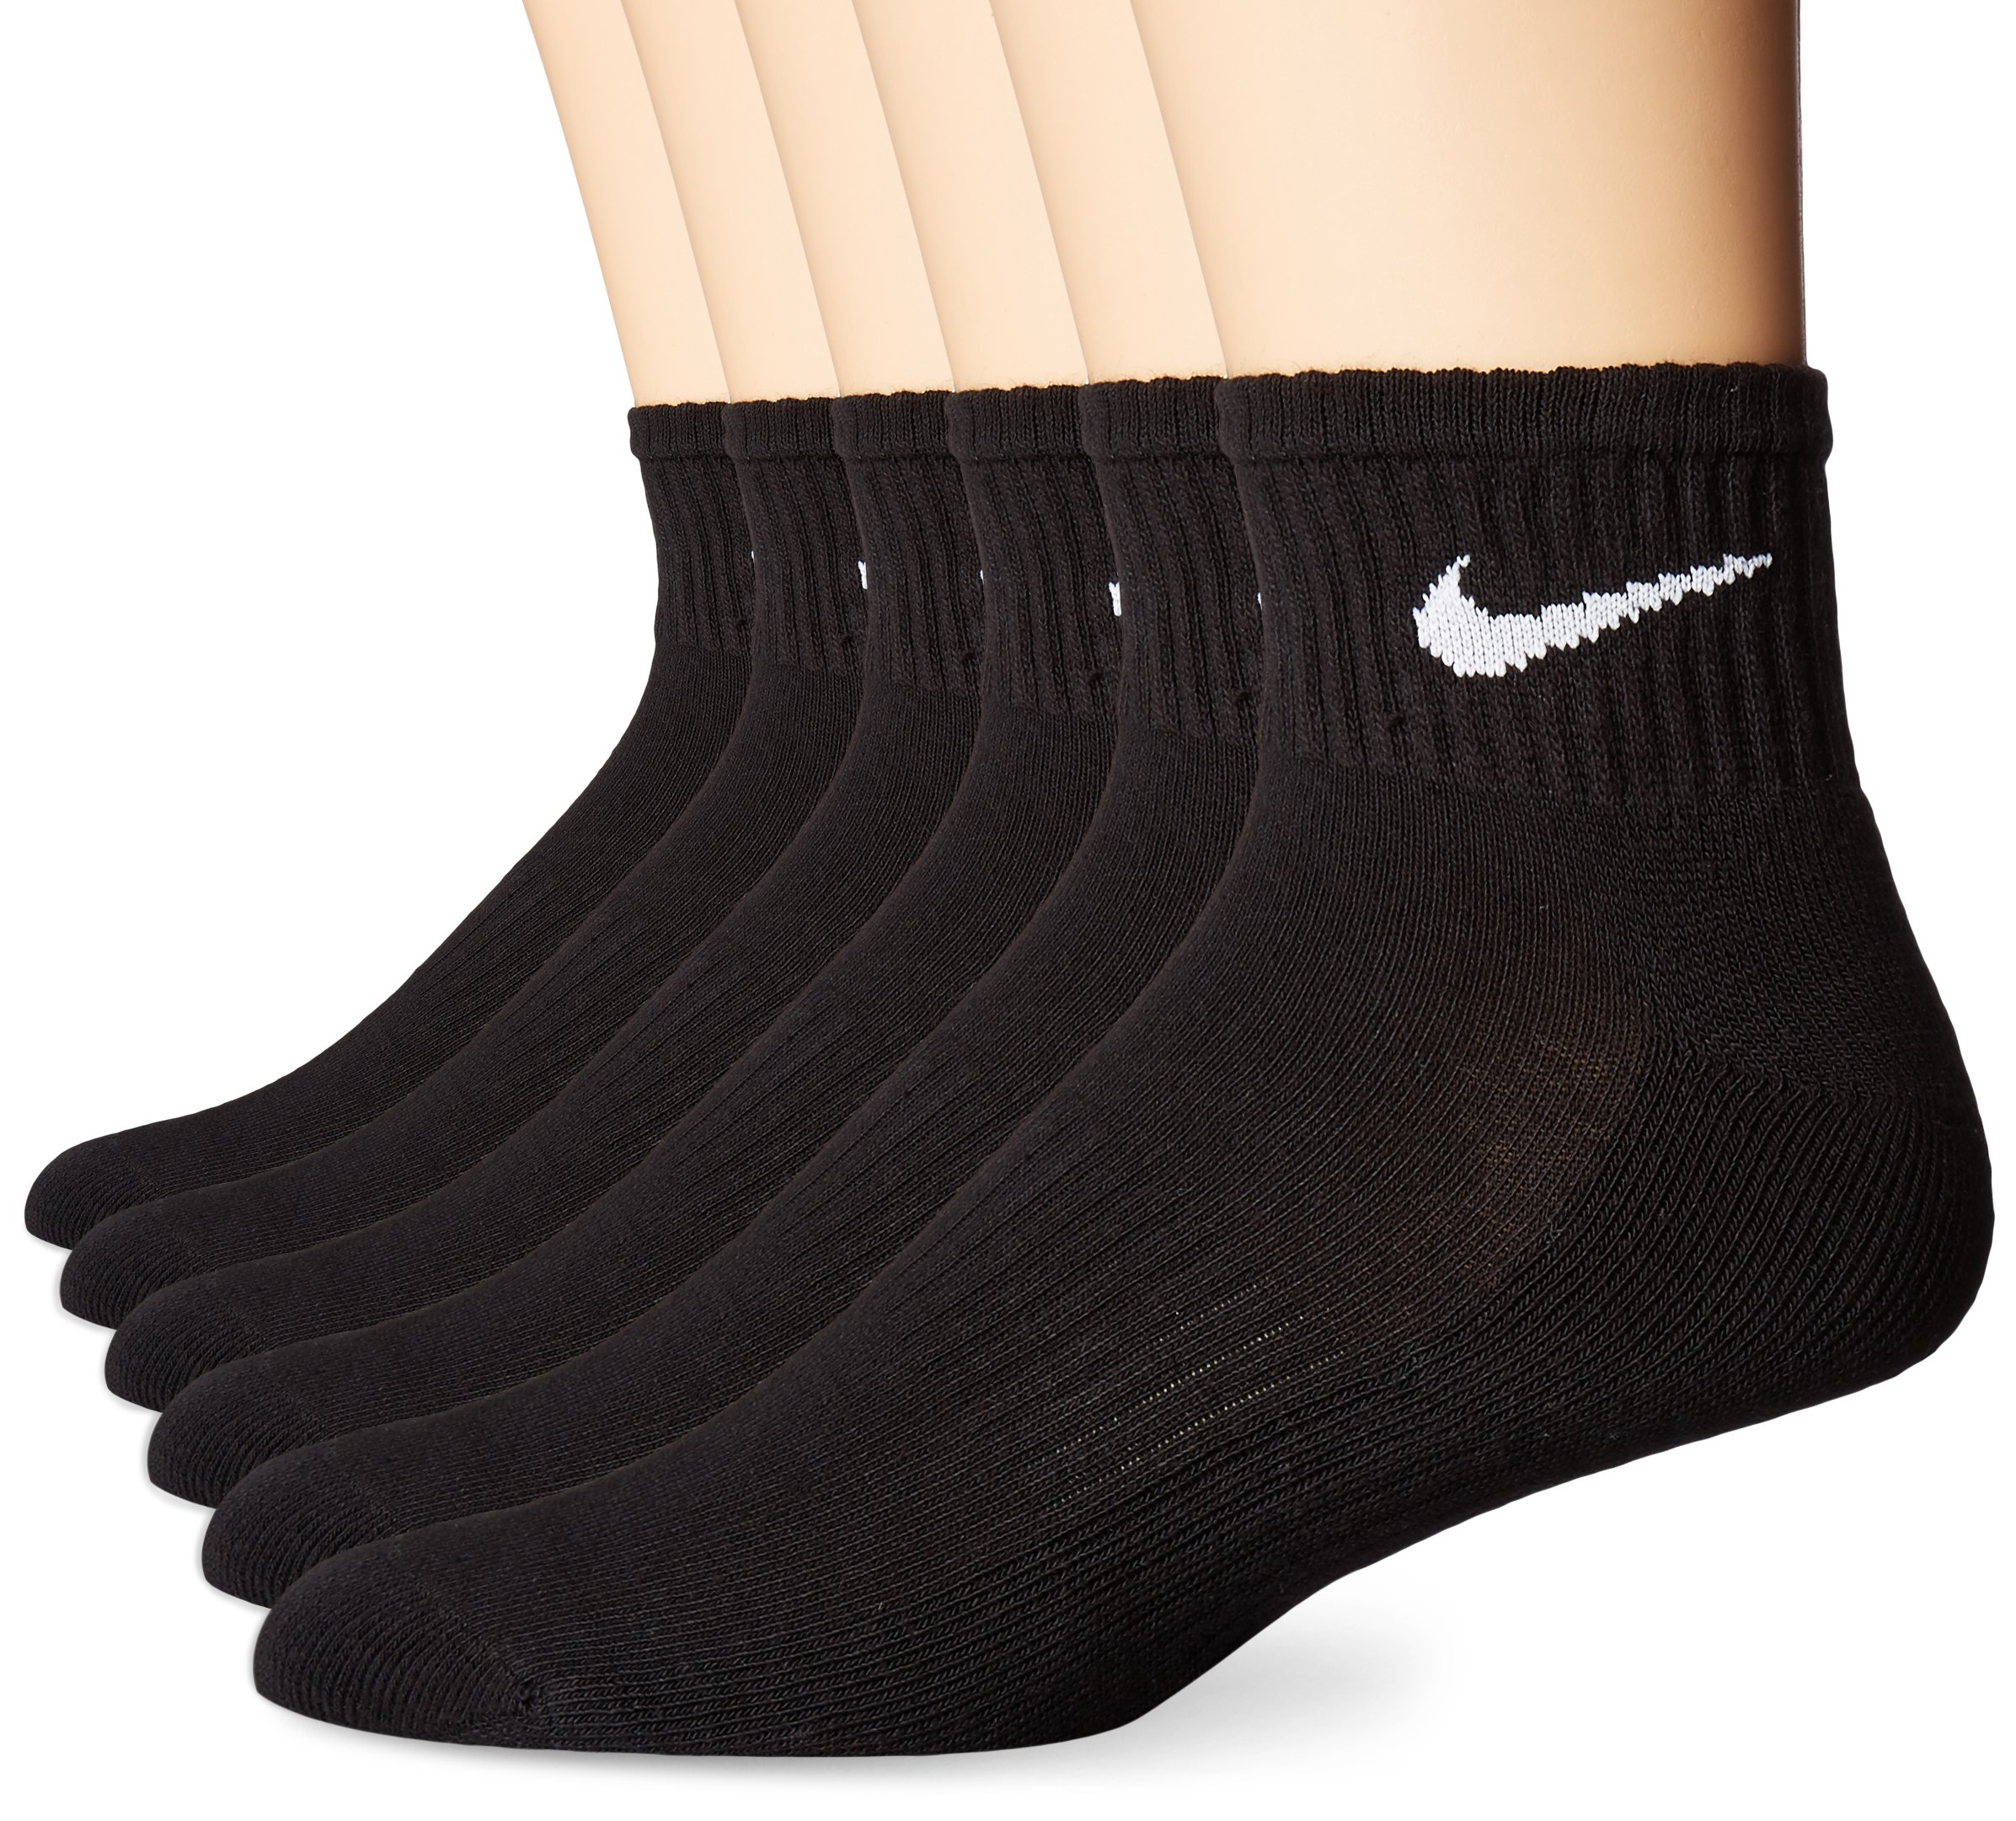 NIKE Unisex Performance Cushion Quarter Socks with Bag (6 Pairs), Black/White, Medium by Nike